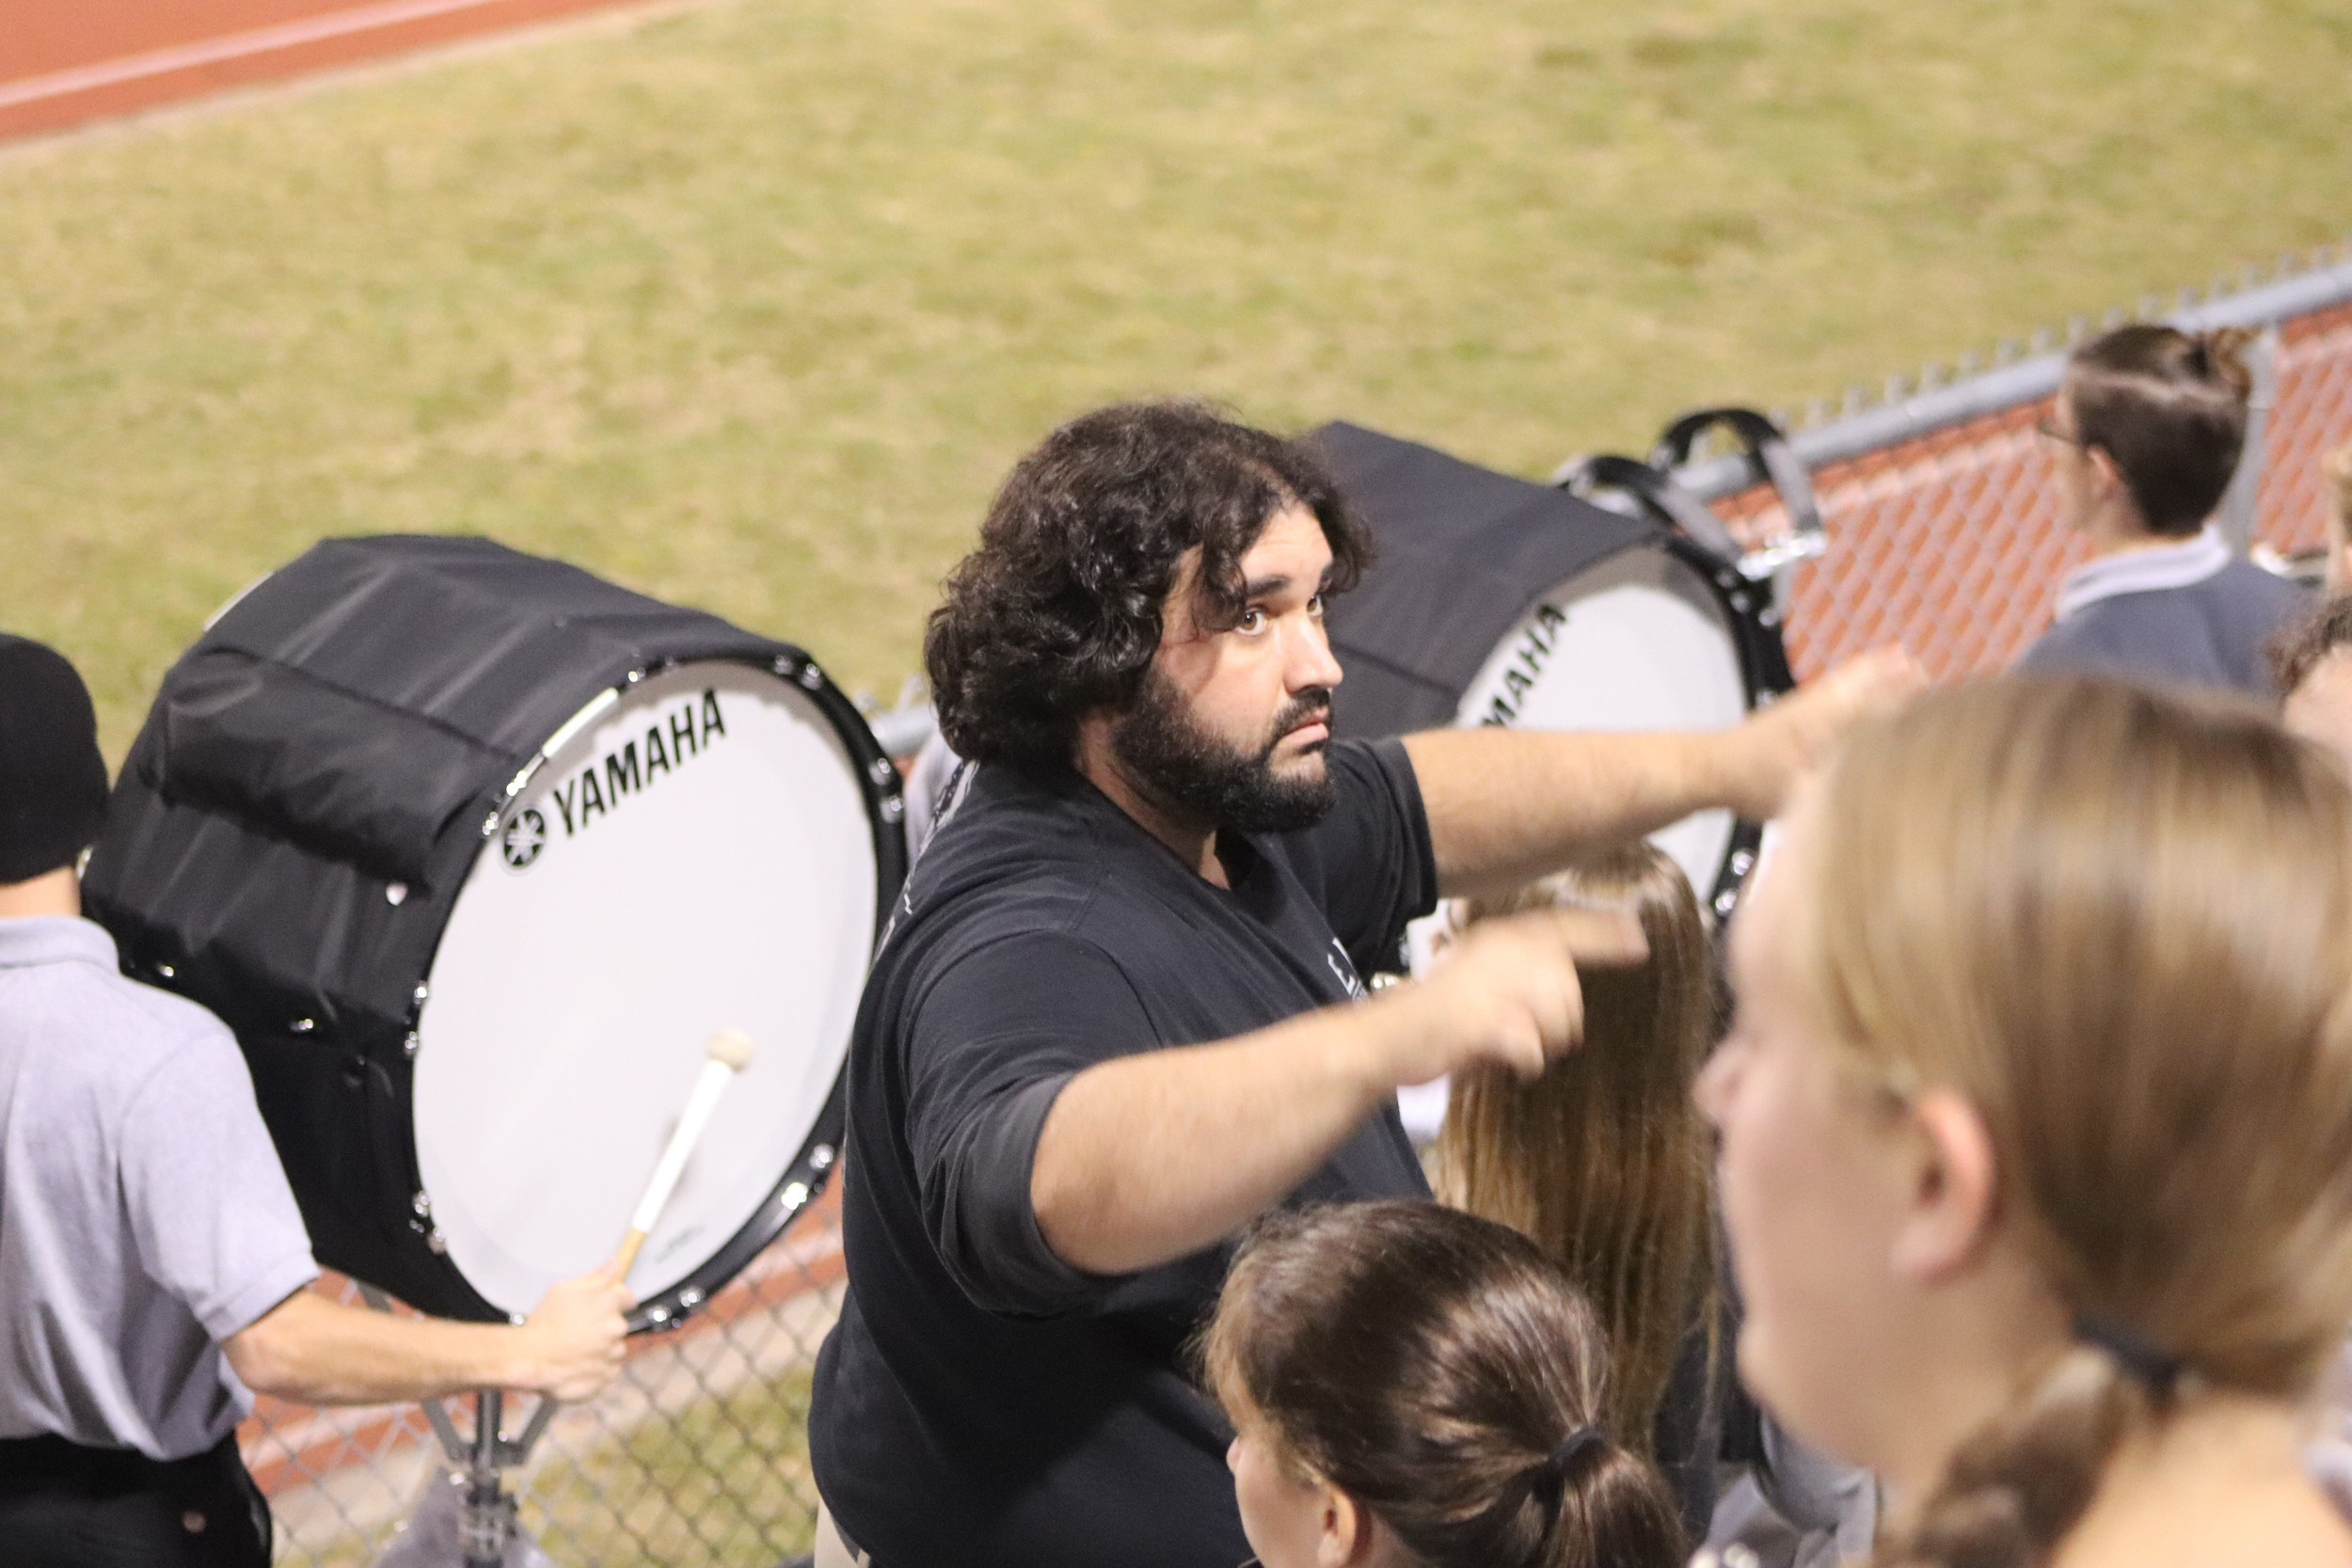 Elberta High School Band Director Josh Cockrell directs his students in the stands during a football game.